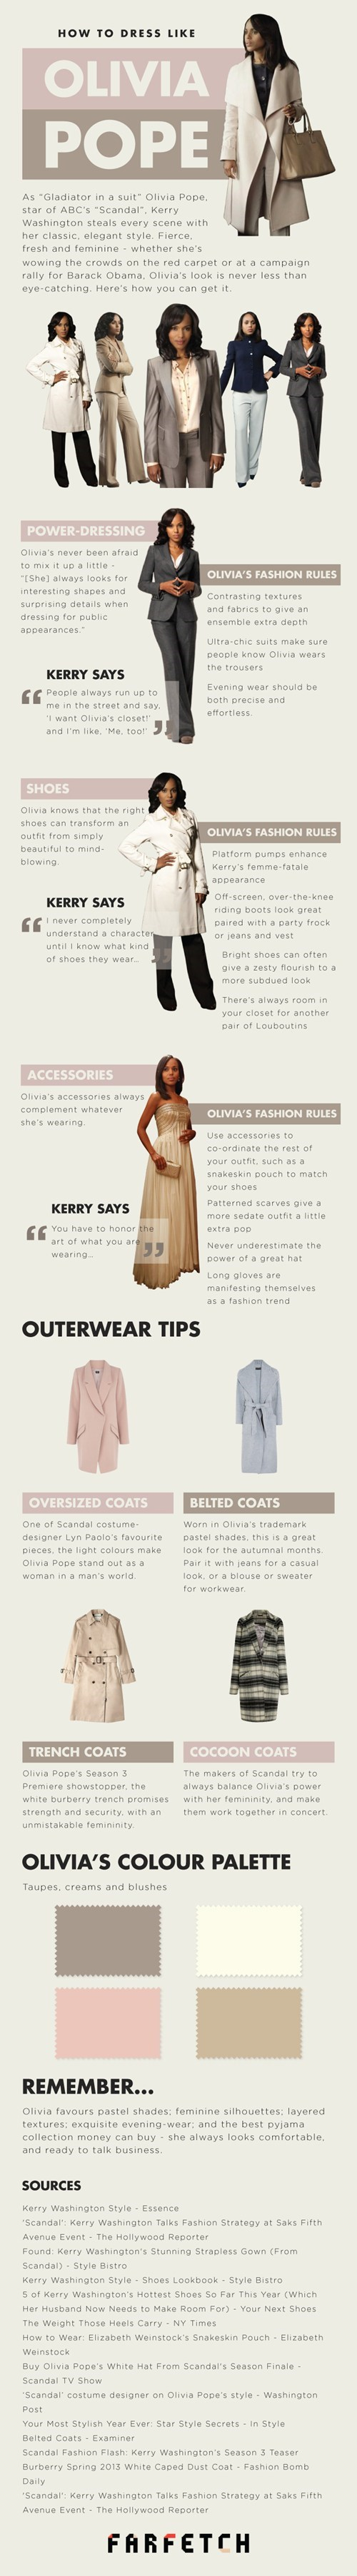 fashion infographic scandal television Olivia Pope - 7941007872